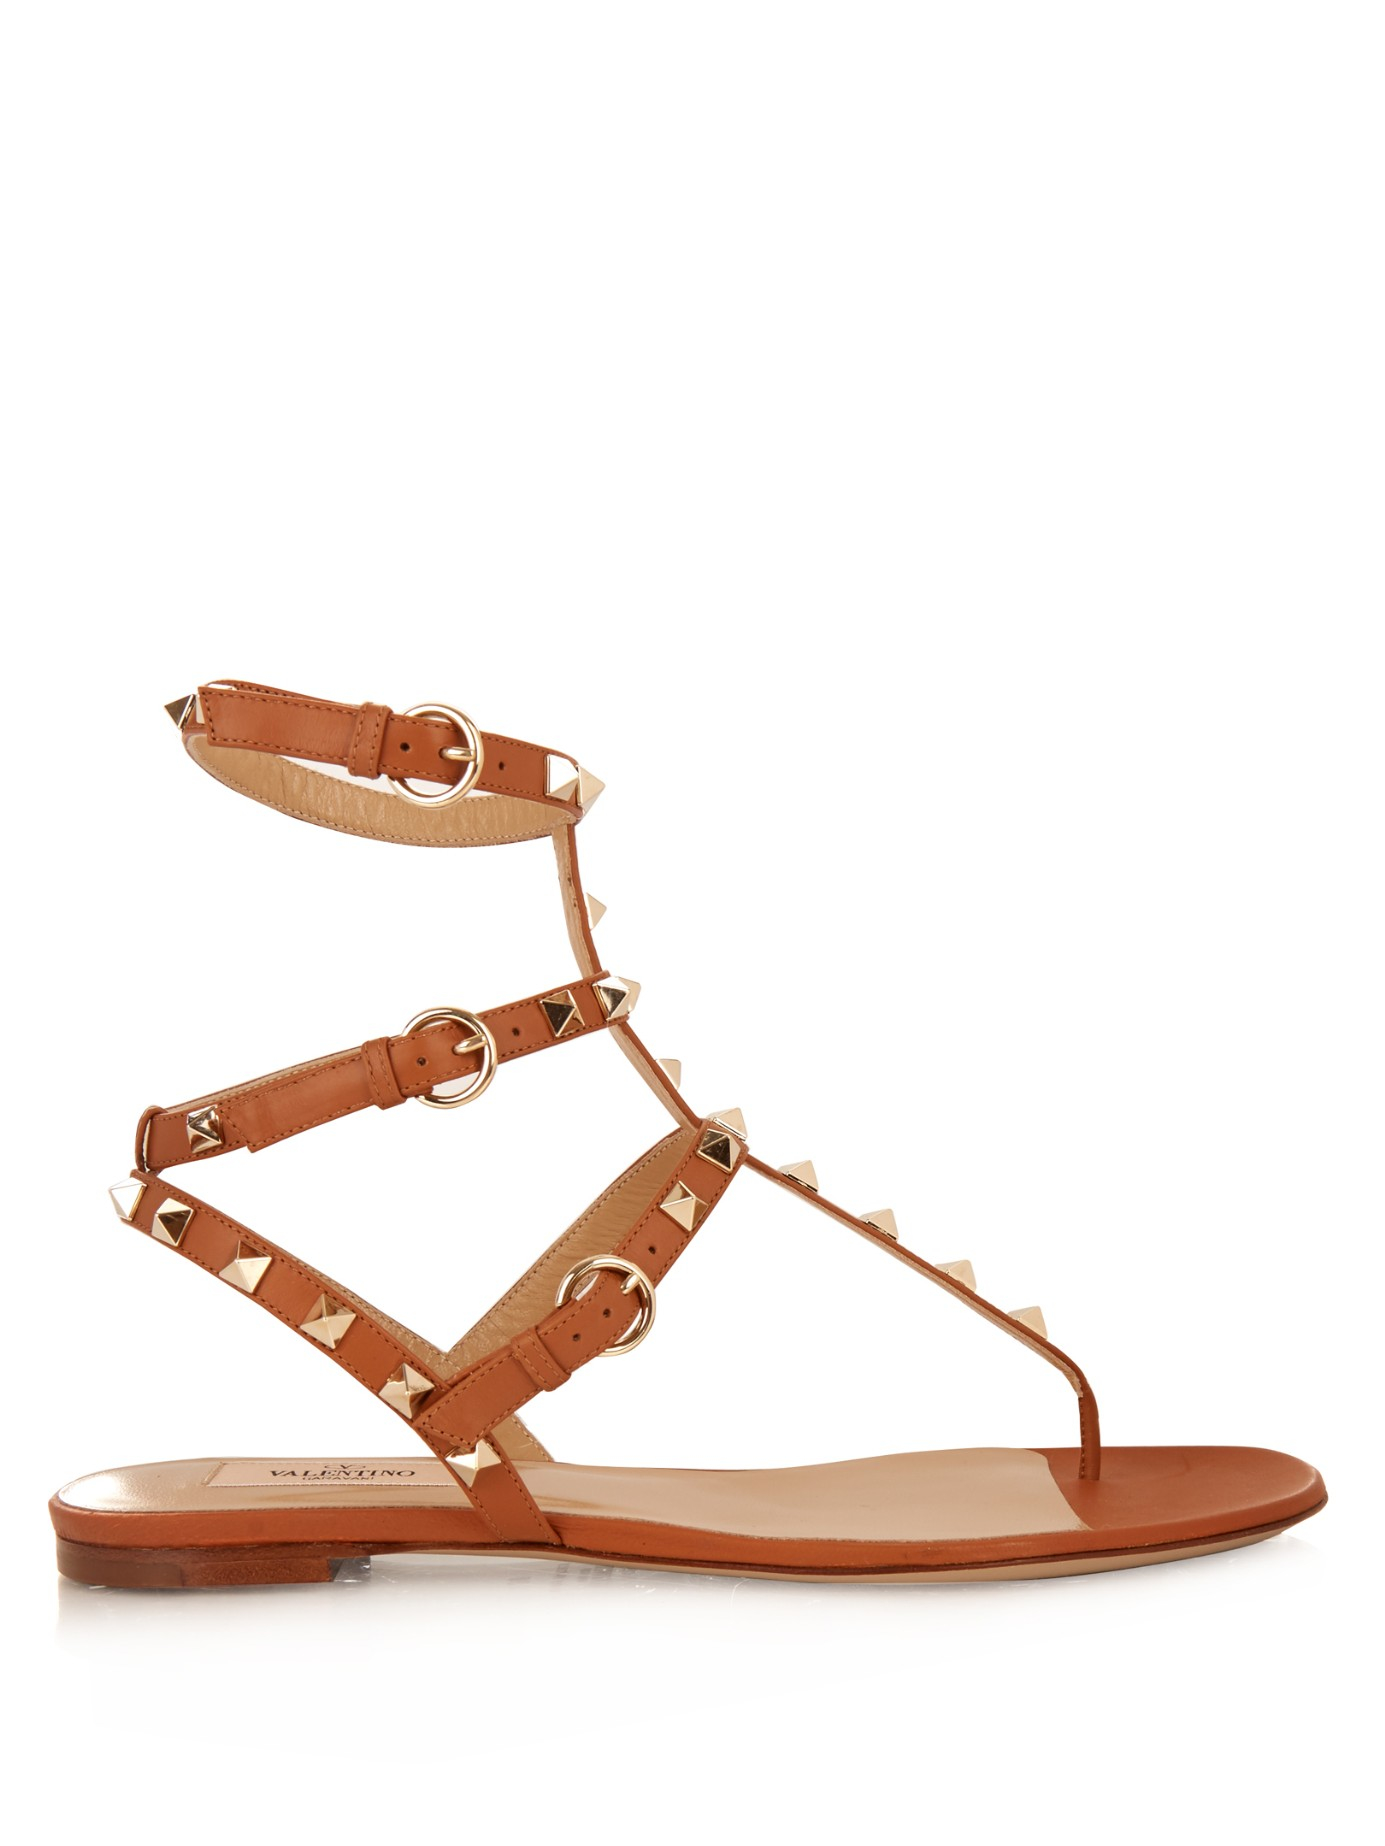 bbcf70da7bbd Valentino Rockstud Leather Sandals in Brown - Lyst